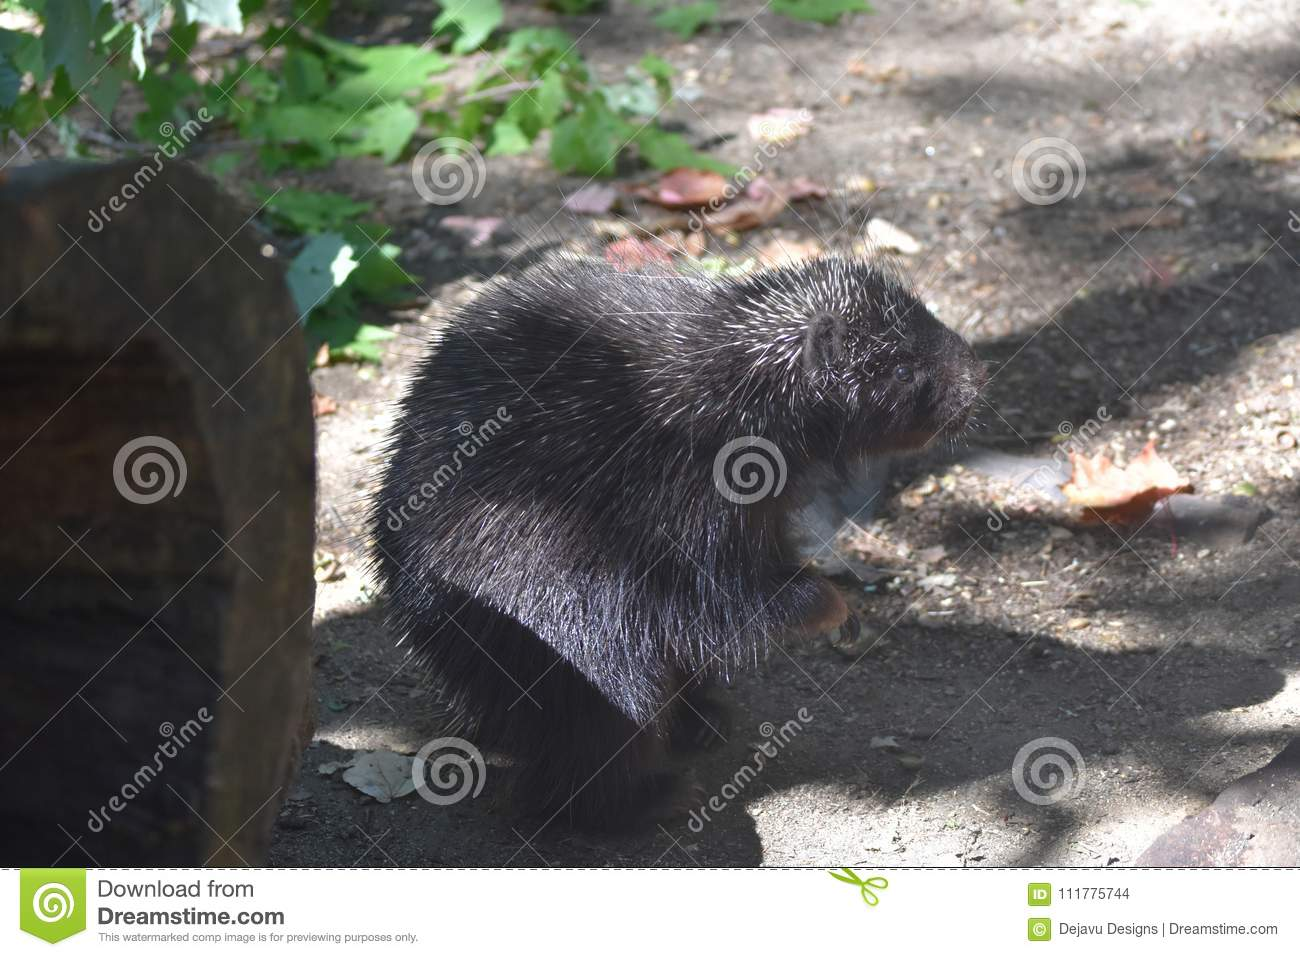 Beautiful porcupine with black and white quills